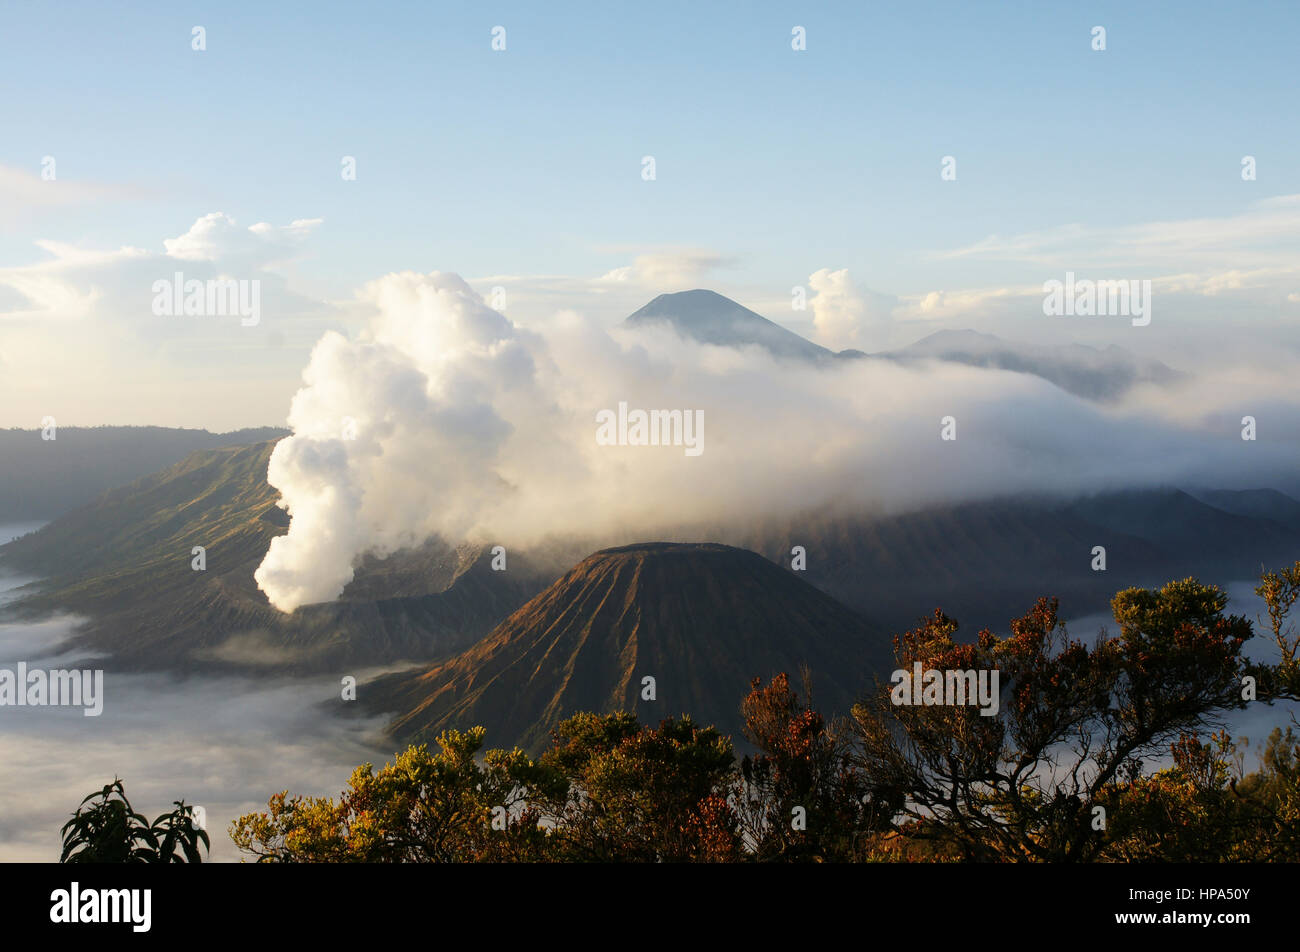 Mount Bromo, an active volcano and part of the Tengger Semeru National Park in East Java, Indonesia. - Stock Image